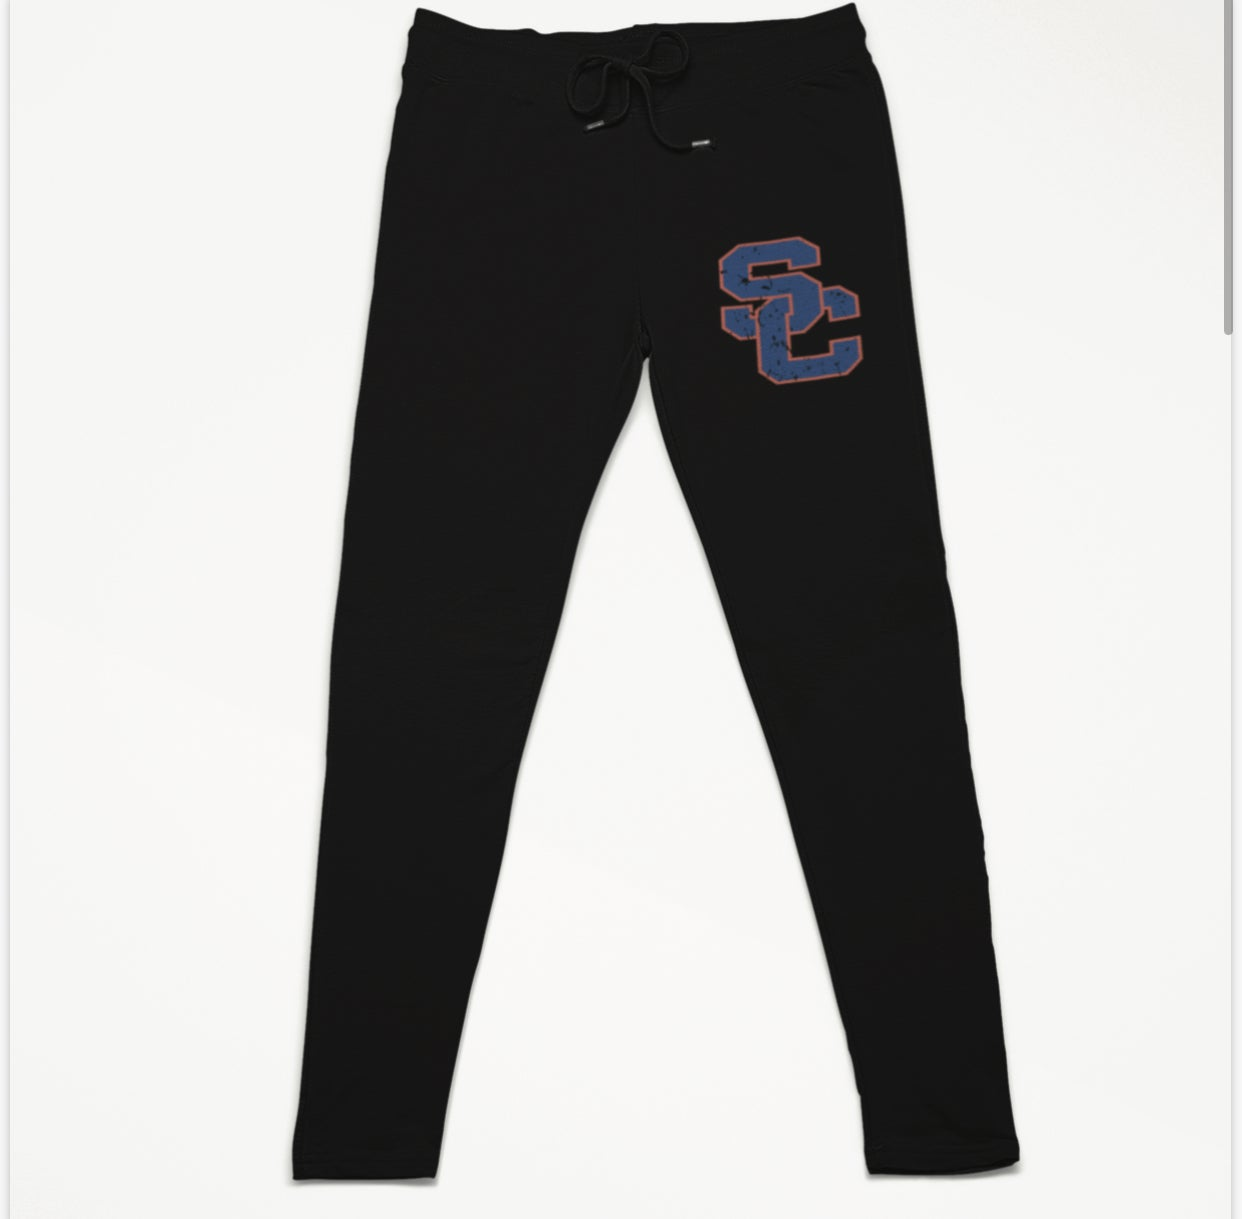 Image of Southaven Charger Joggers - SC logo